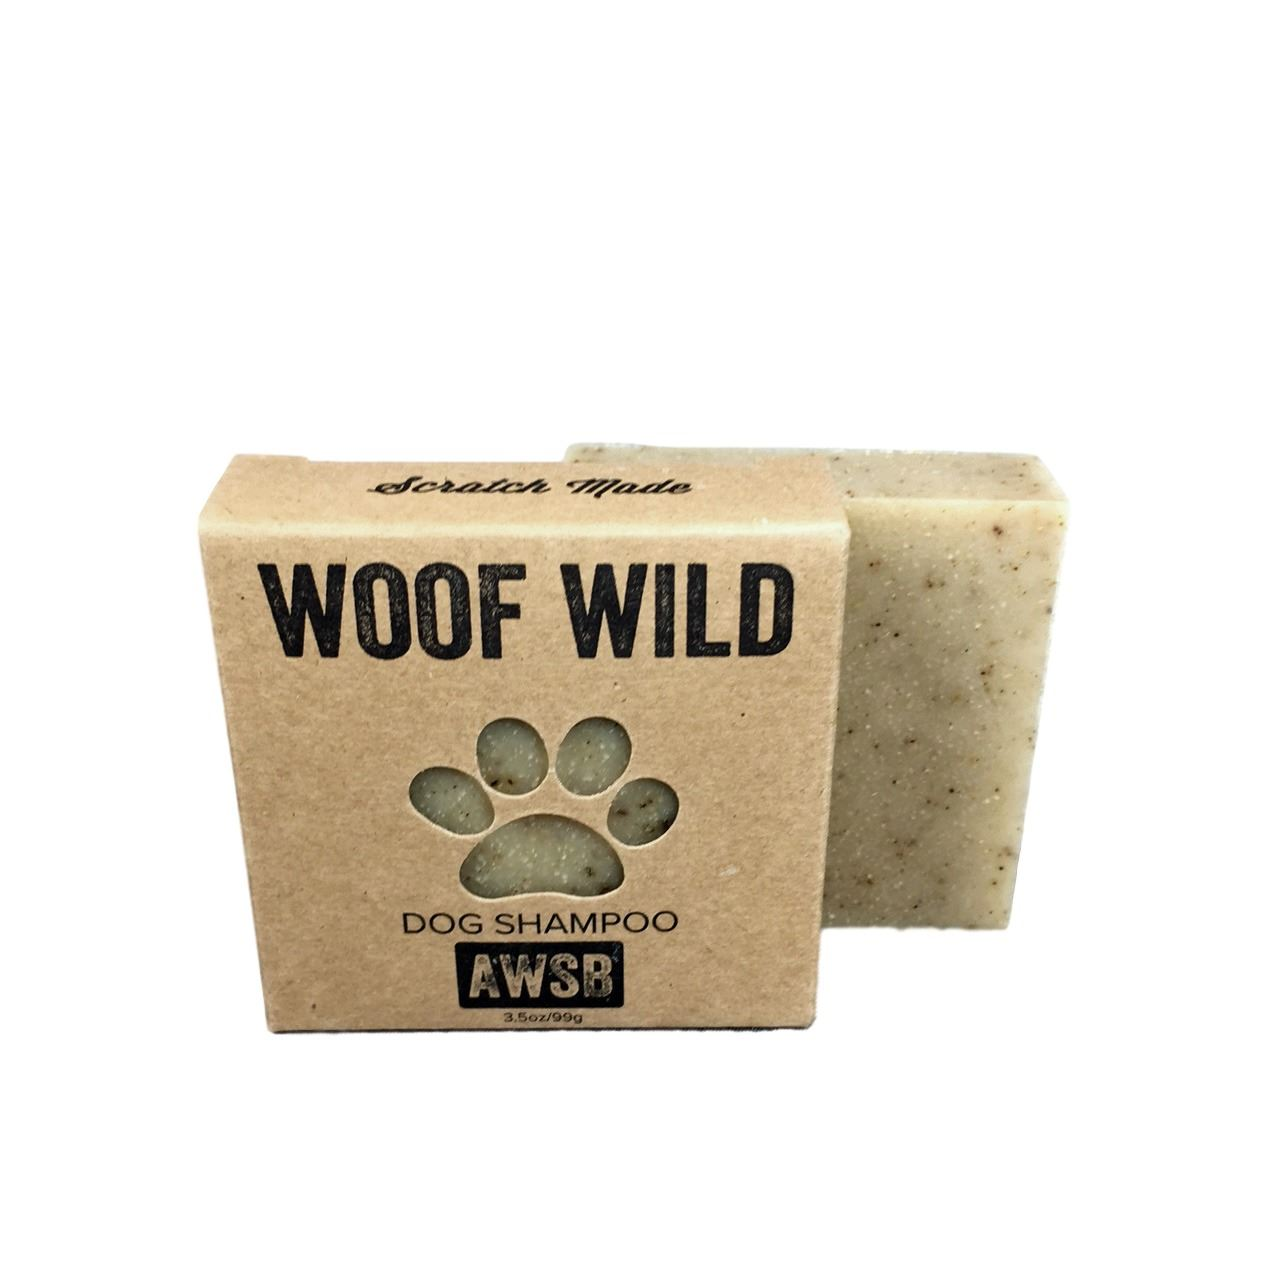 woof wild dog shampoo woof wild,dog,natural,organic,handmade,dog shampoo,shampoo bar,dog soap,aloe,oats,oatmeal,bugs,fleas,ticks,bentonite clay,clay